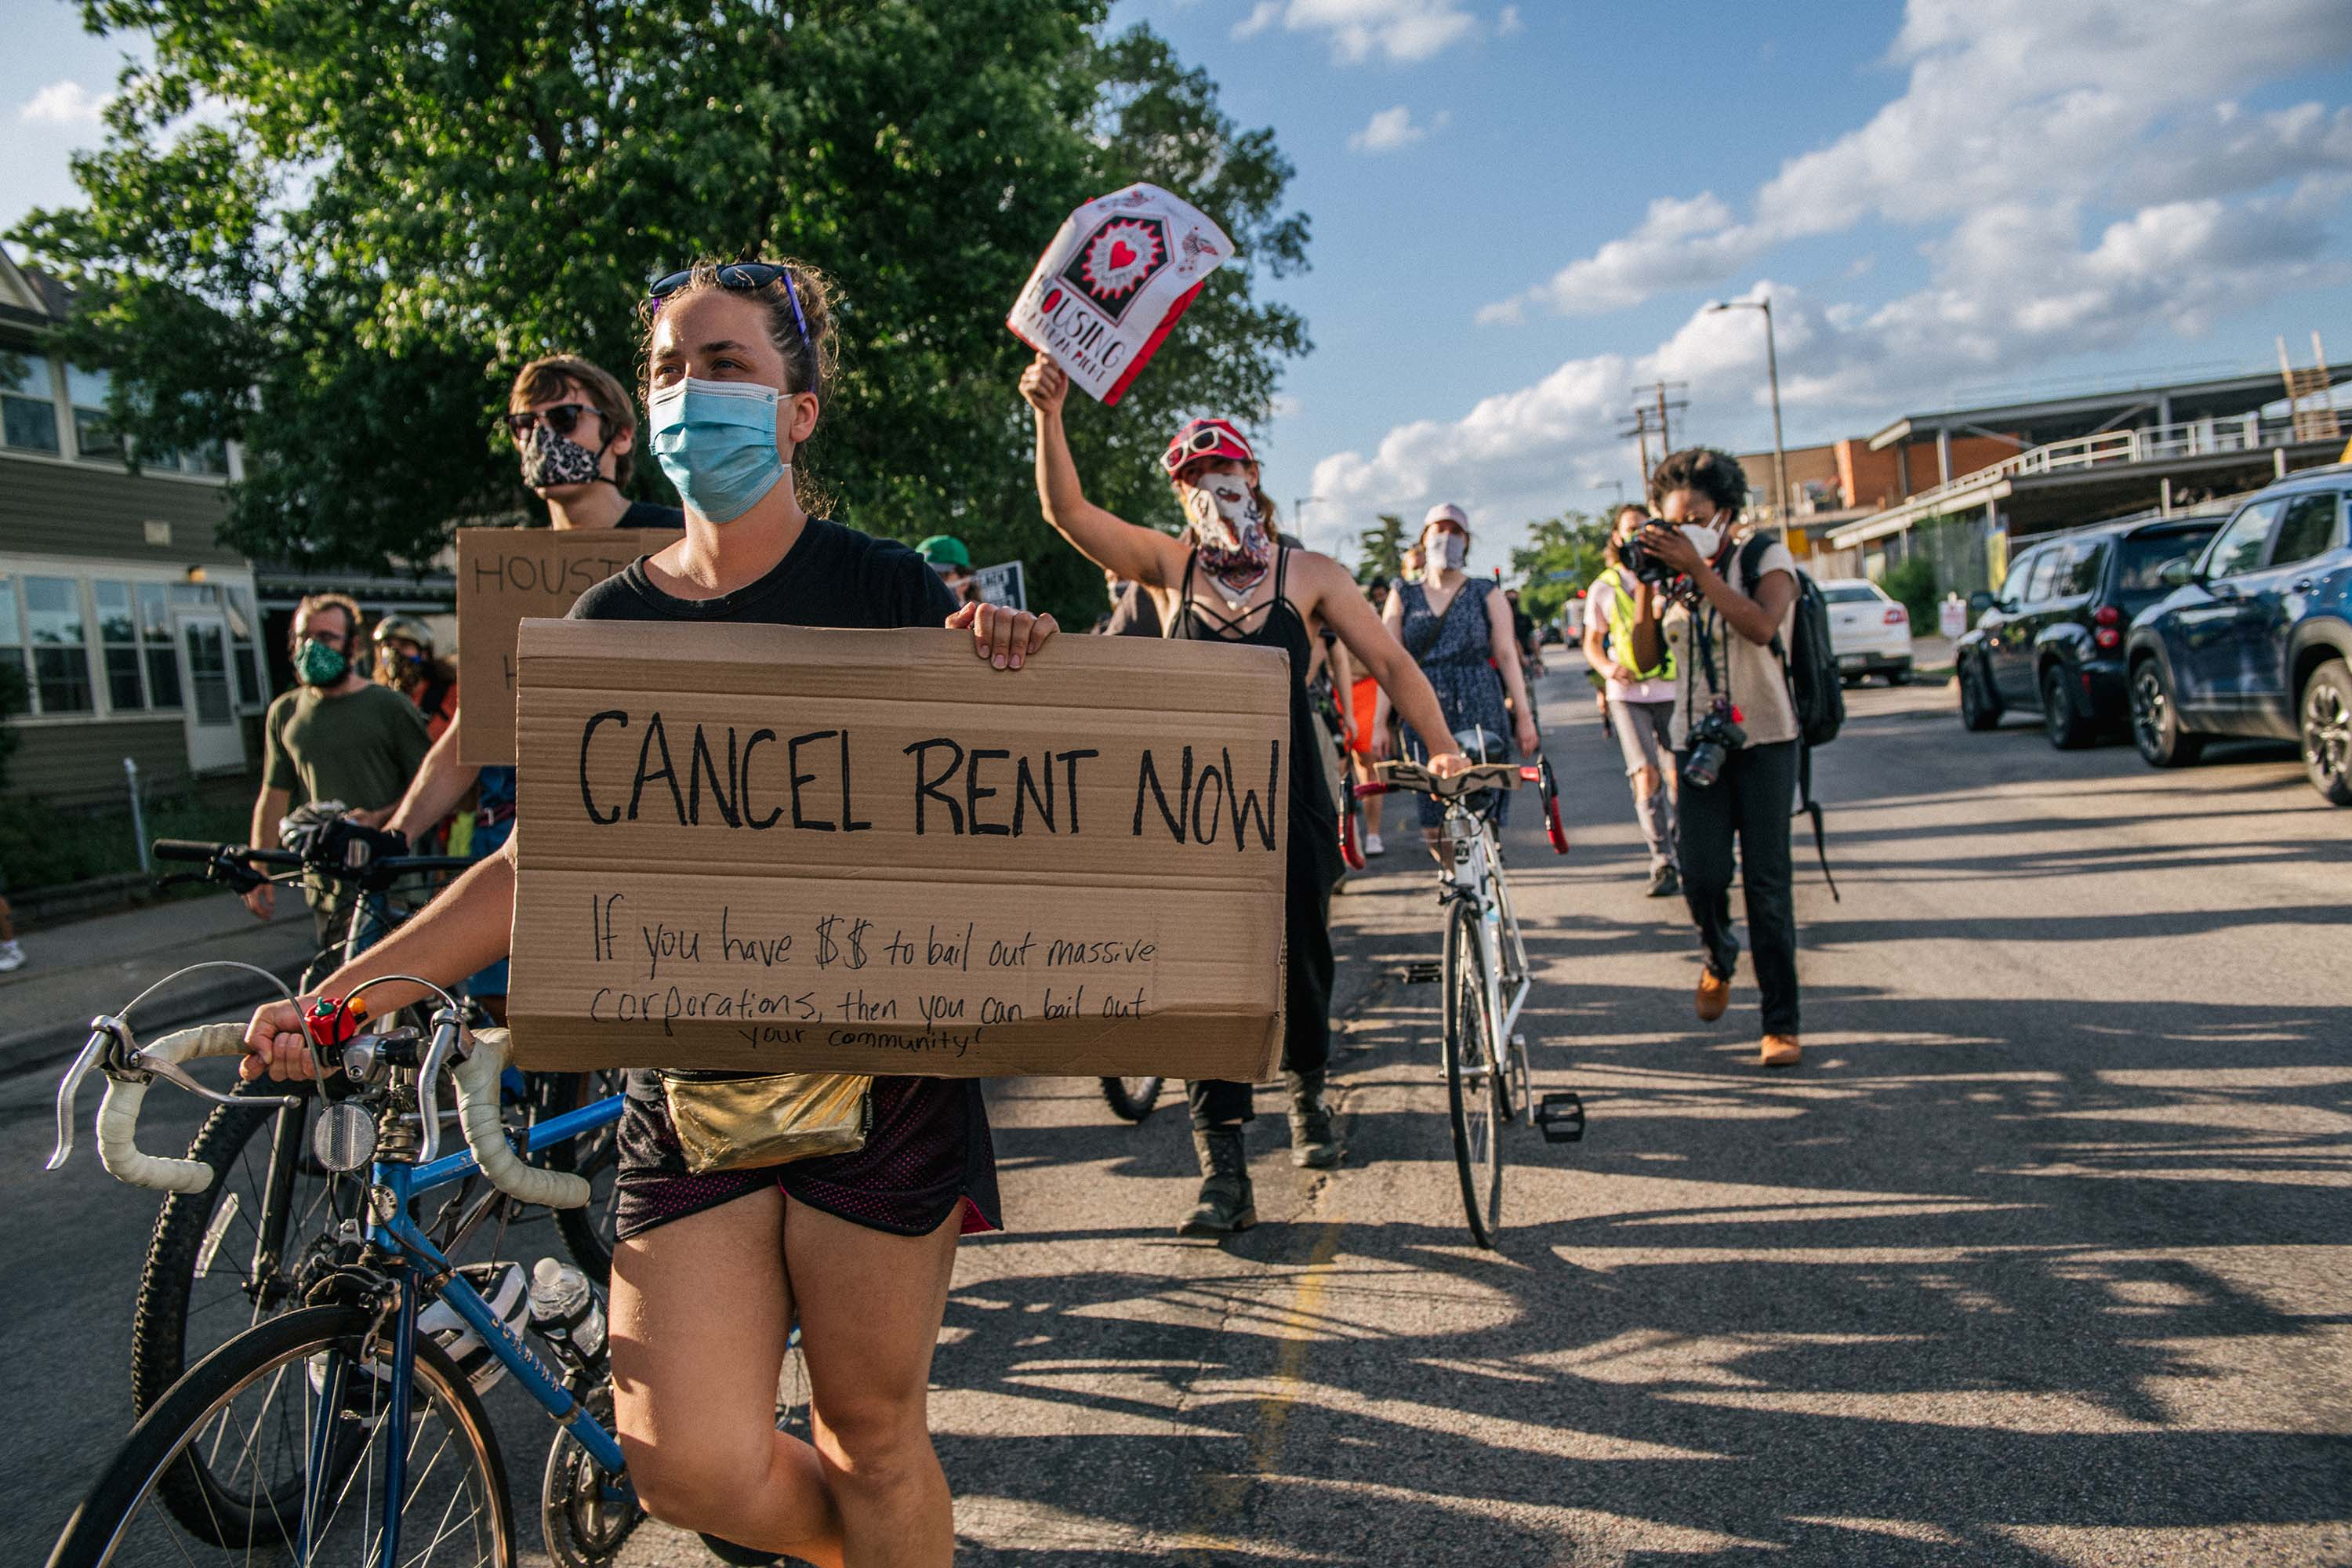 Demonstrators march in the street during the Cancel Rent and Mortgages rally in Minneapolis, Minnesota on June 30.